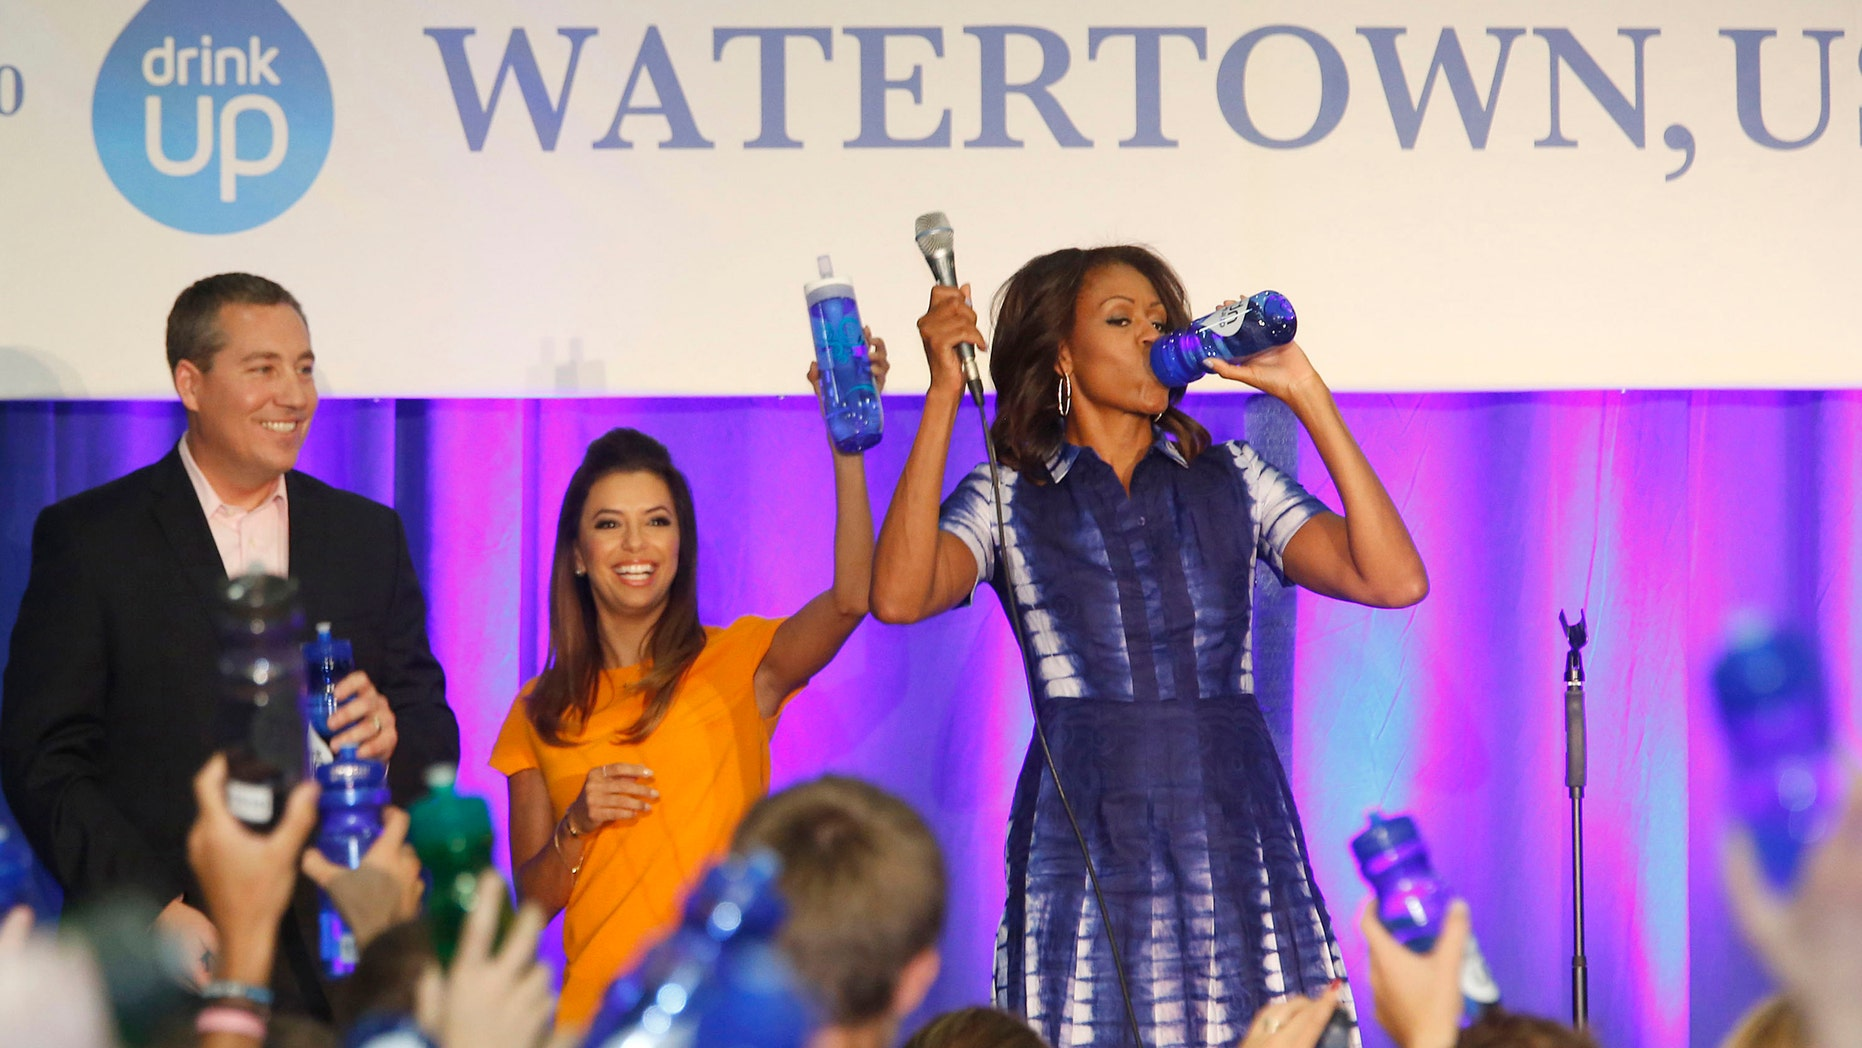 """Actress Eva Longoria teams with Brita to join First Lady Michelle Obama and Watertown High School principal Scott Mantei in support of """"Drink Up,"""" a new effort launched by the Partnership for a Healthier America in Watertown, Wis."""